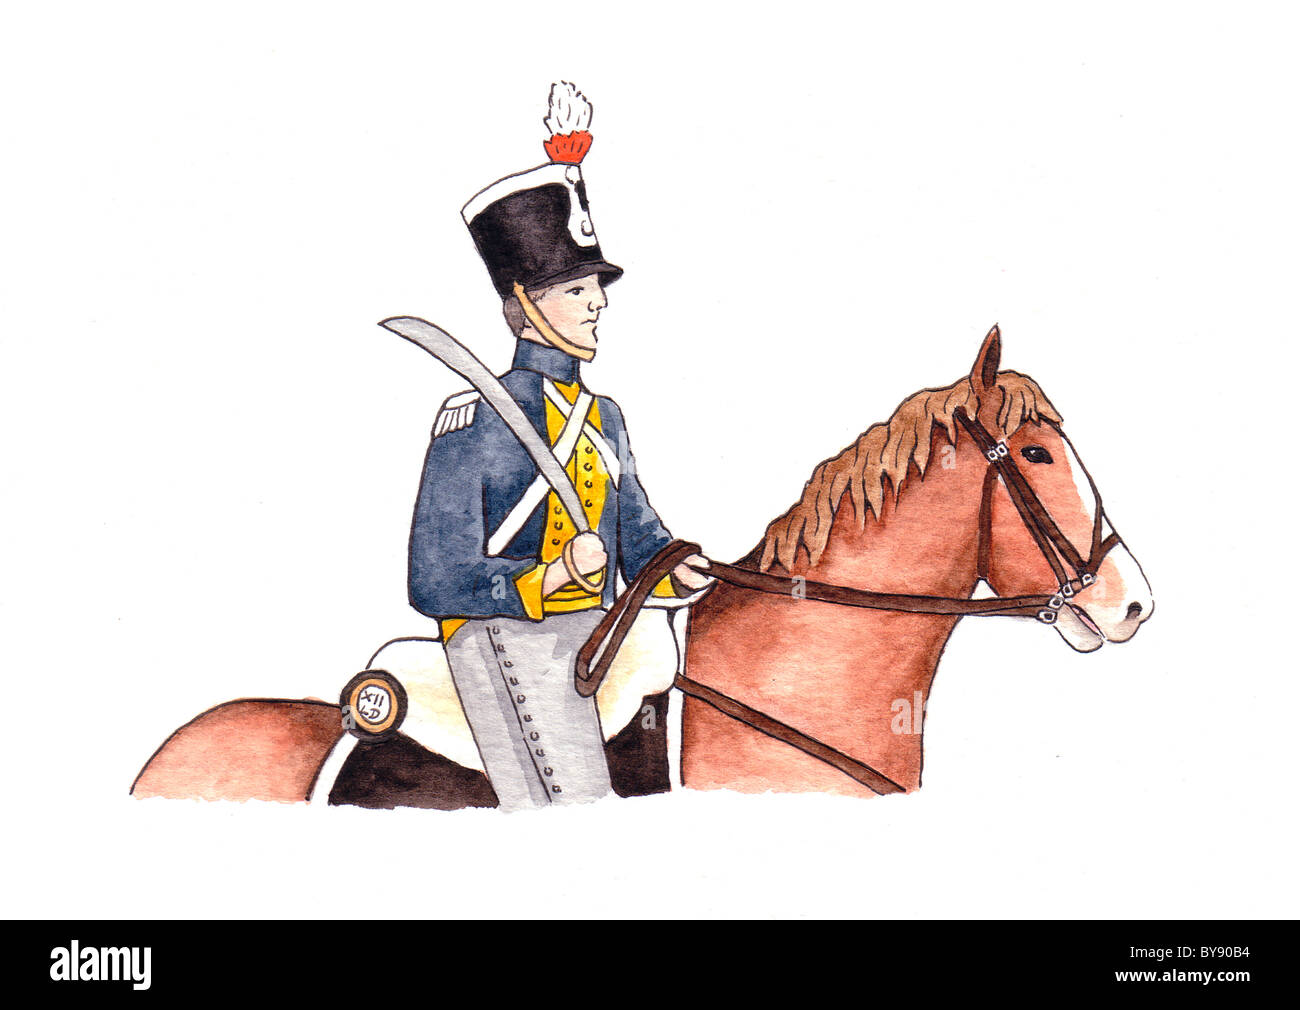 Hussar on horse - Stock Image